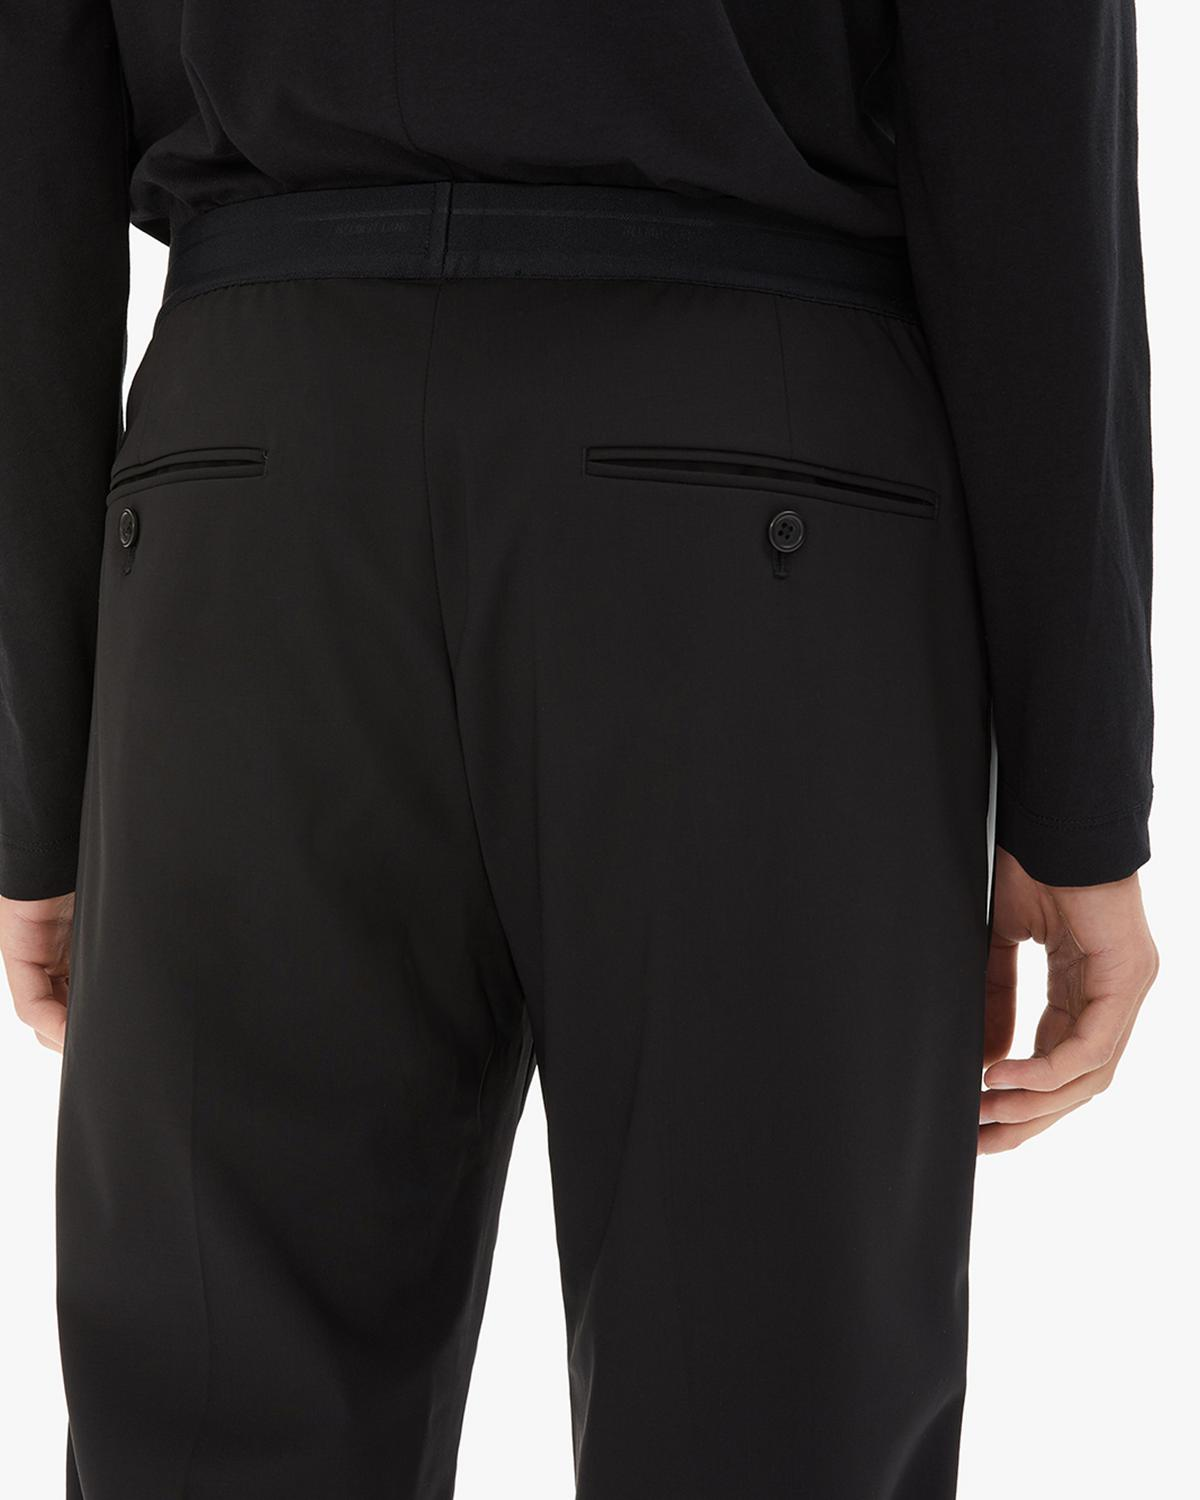 BAND PULL ON PANT